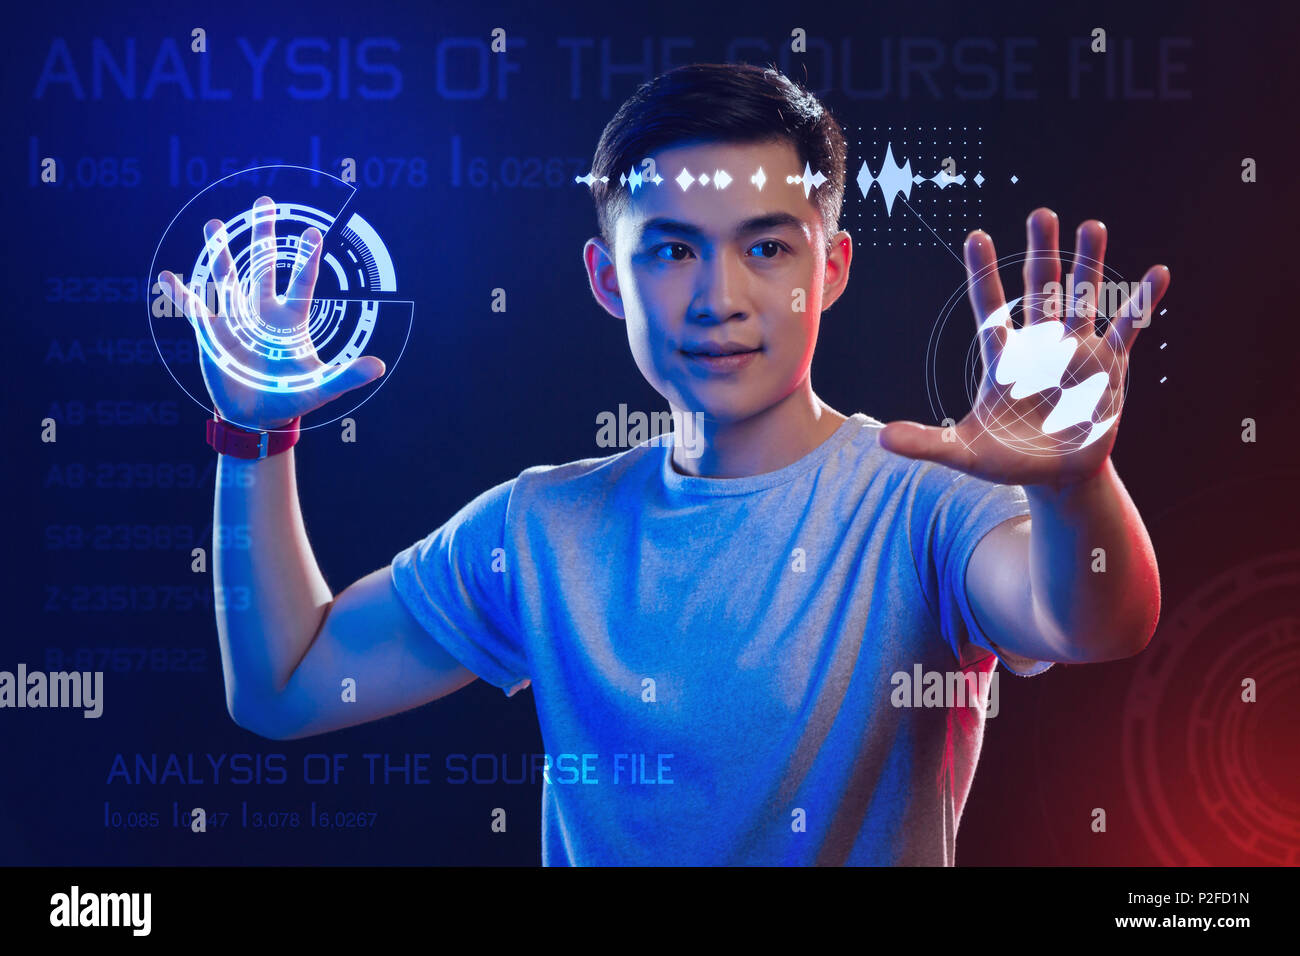 Professional web developer using holograms while working - Stock Image